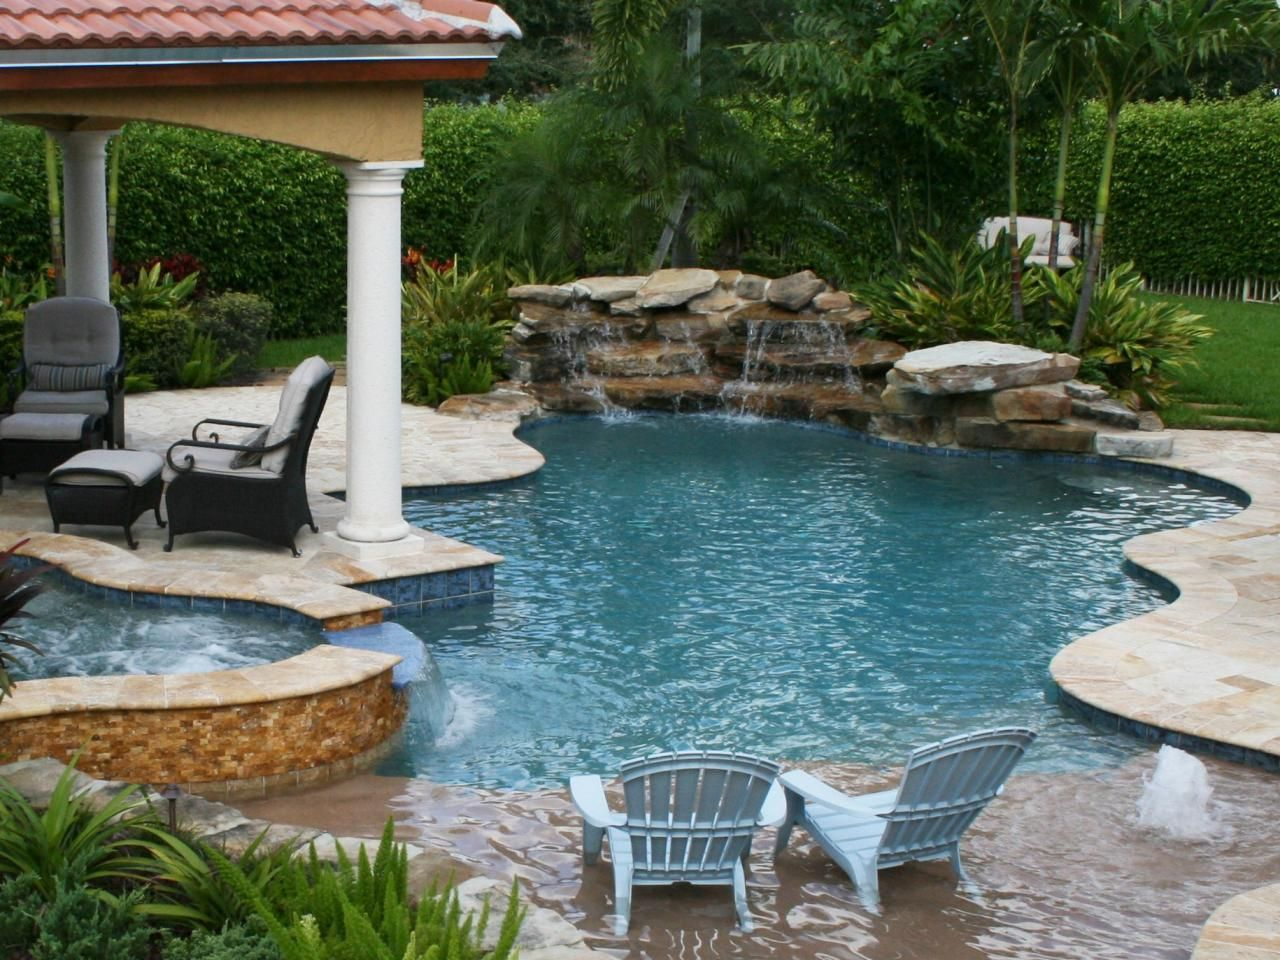 Dreamy pool design ideas backyard pool designs and for Square pond ideas